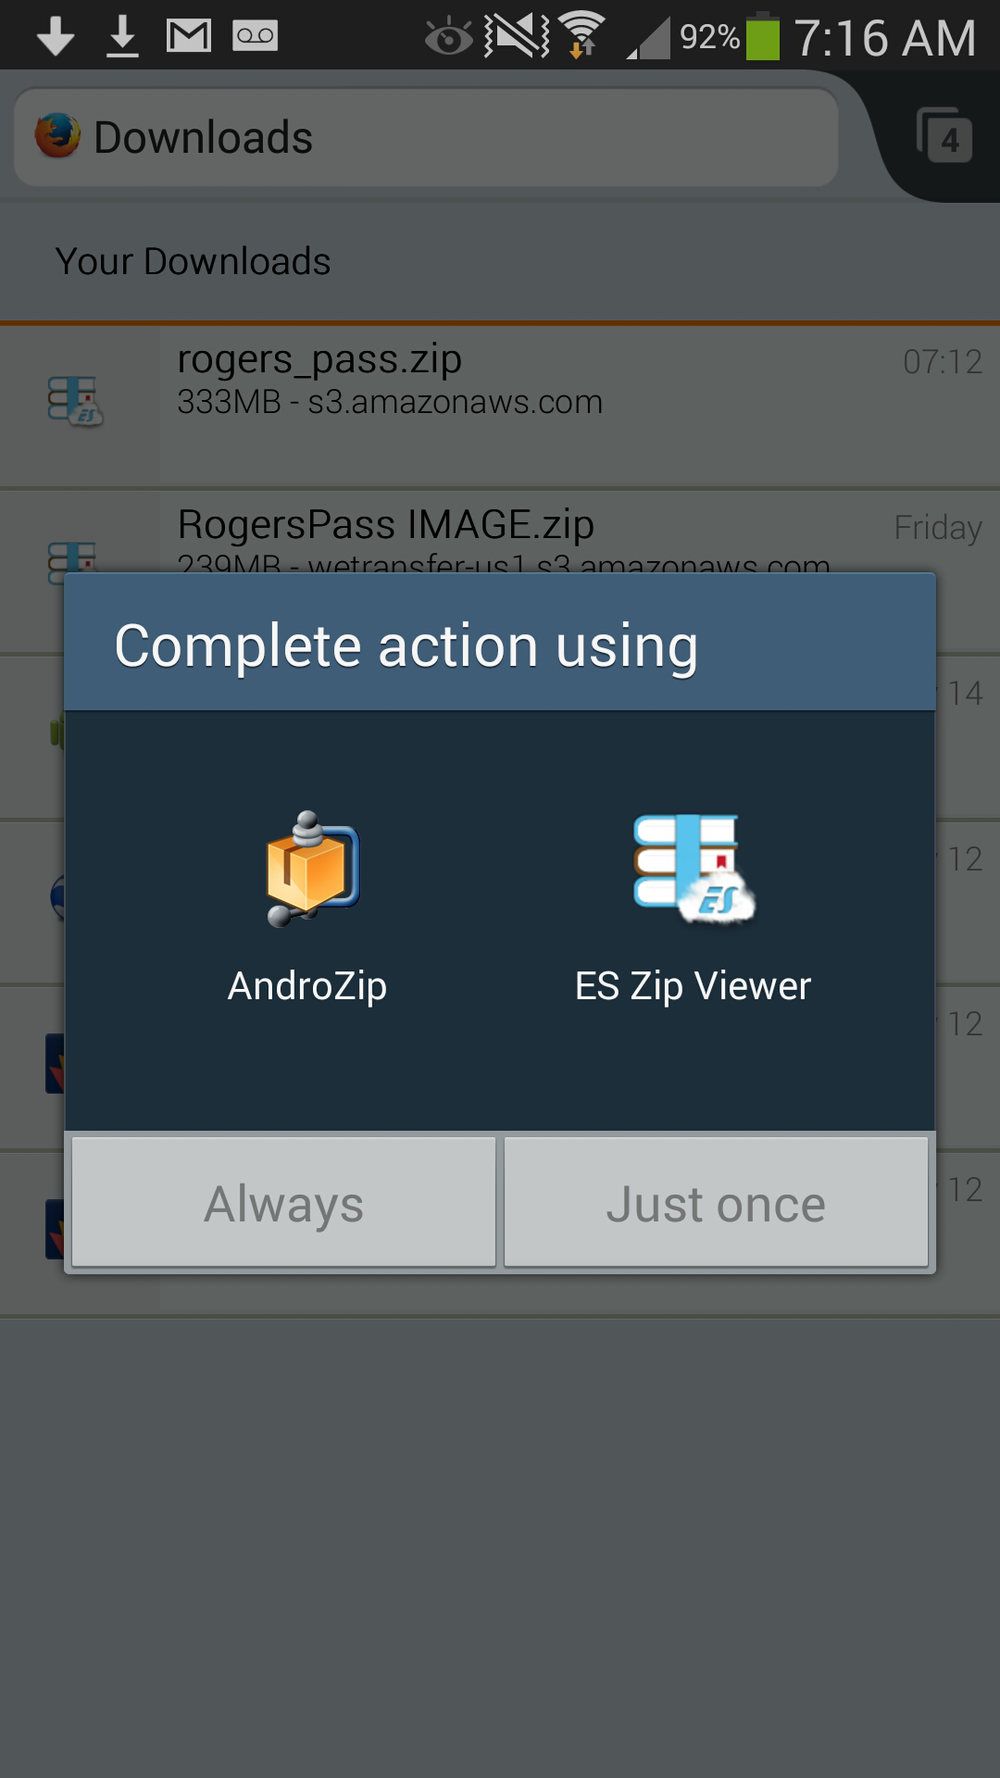 Image 5: Use your favourite zip utility to unzip the file.